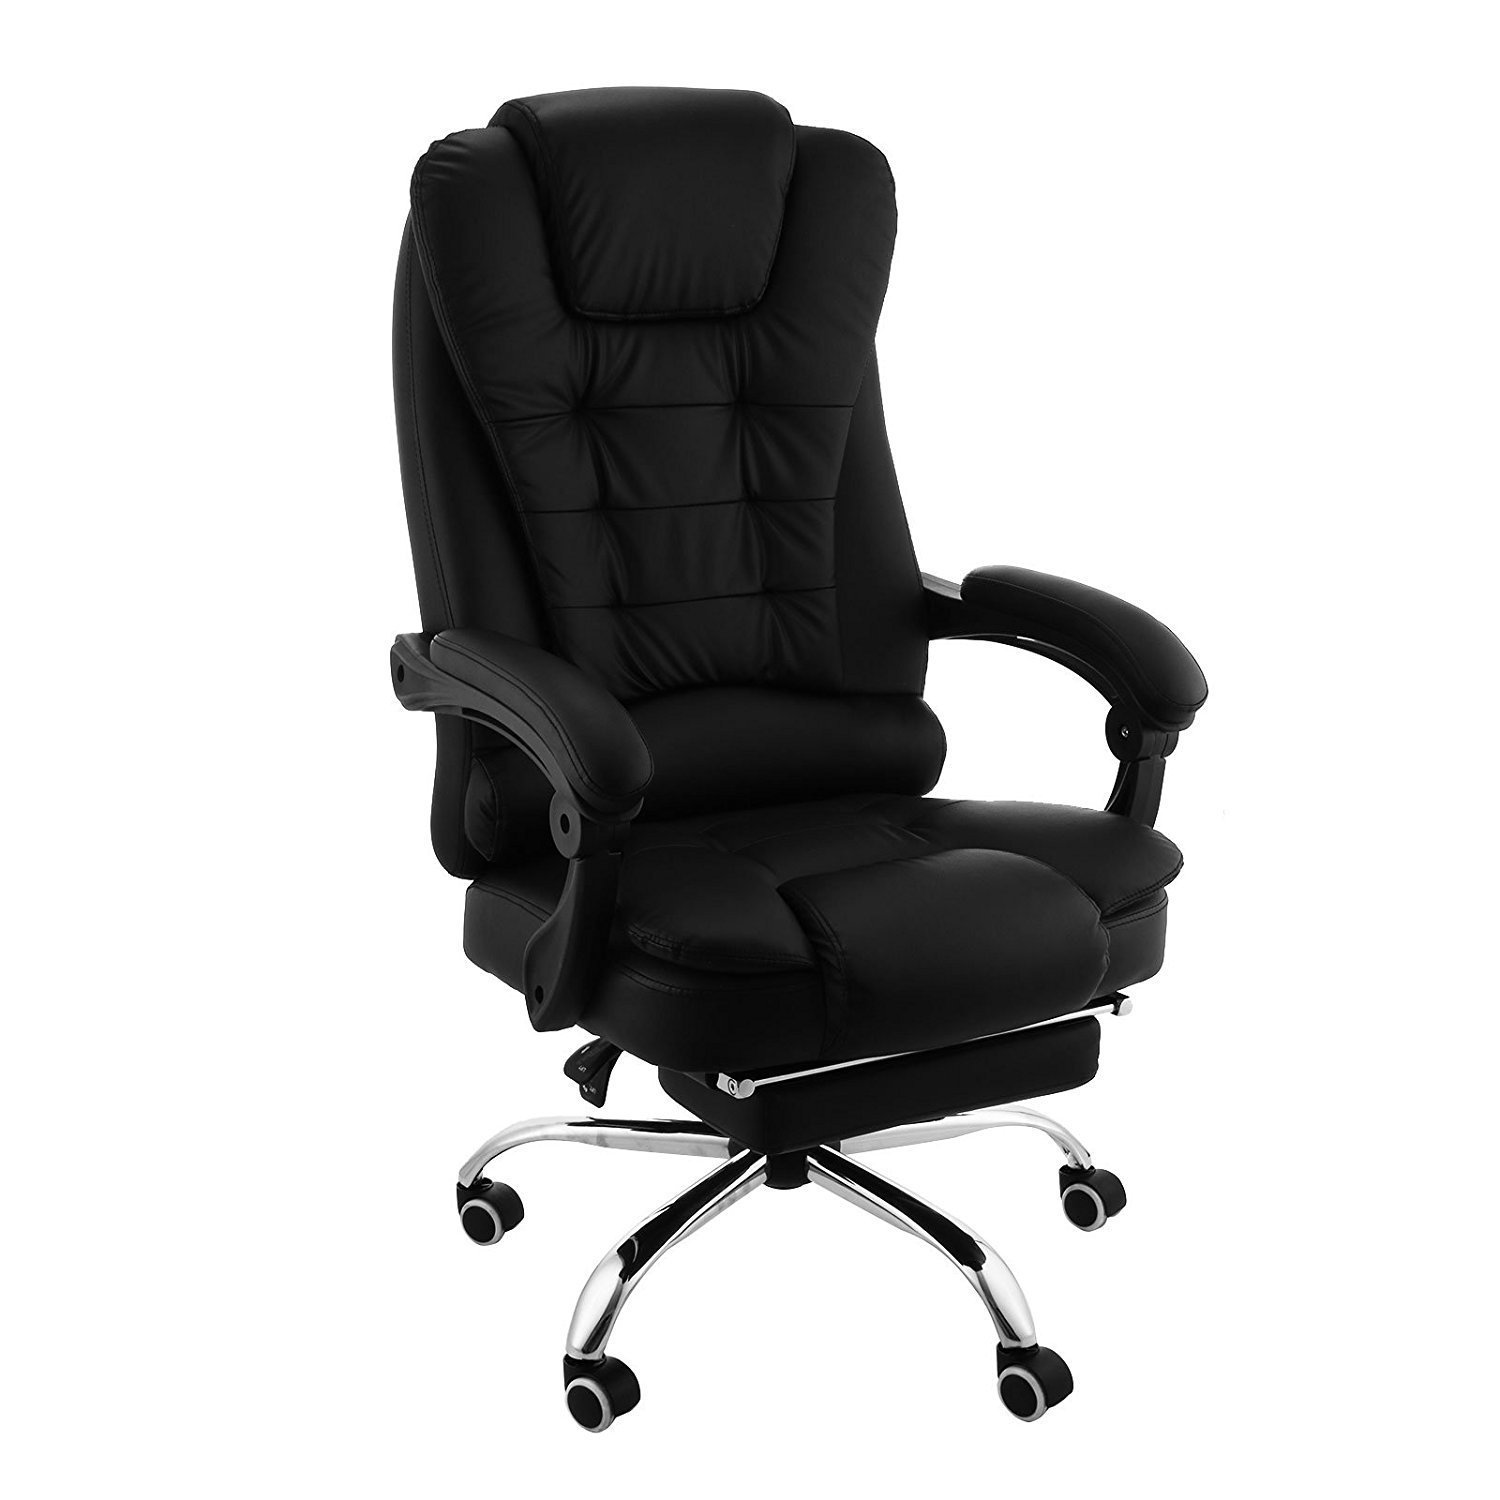 ergonomic chair levers used chairs for sale orangea high back office pu home